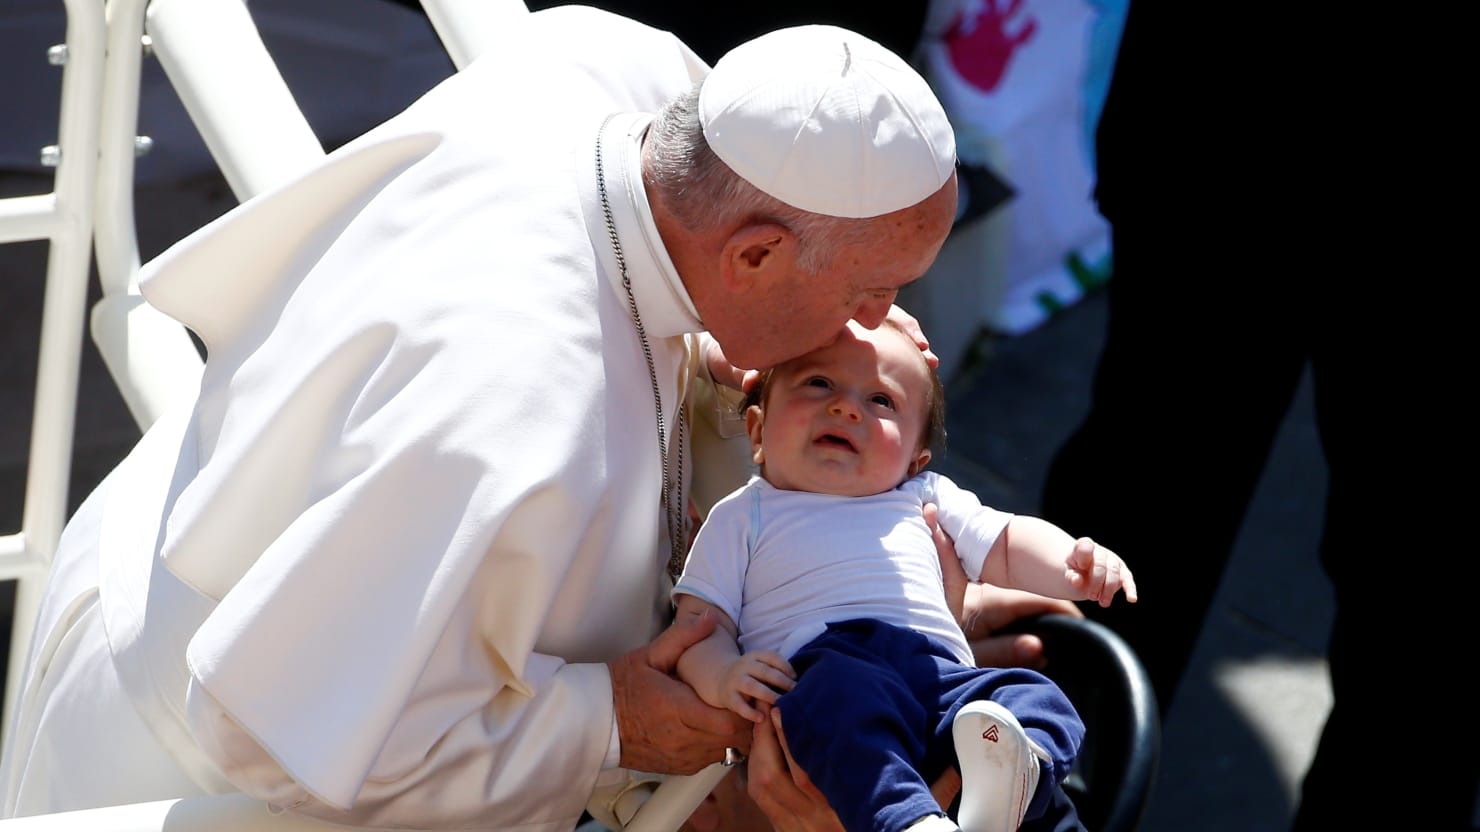 thedailybeast.com - Barbie Latza Nadeau - Pope Francis Says Abortion is Never Ok, Not Even if Fetus Will Die